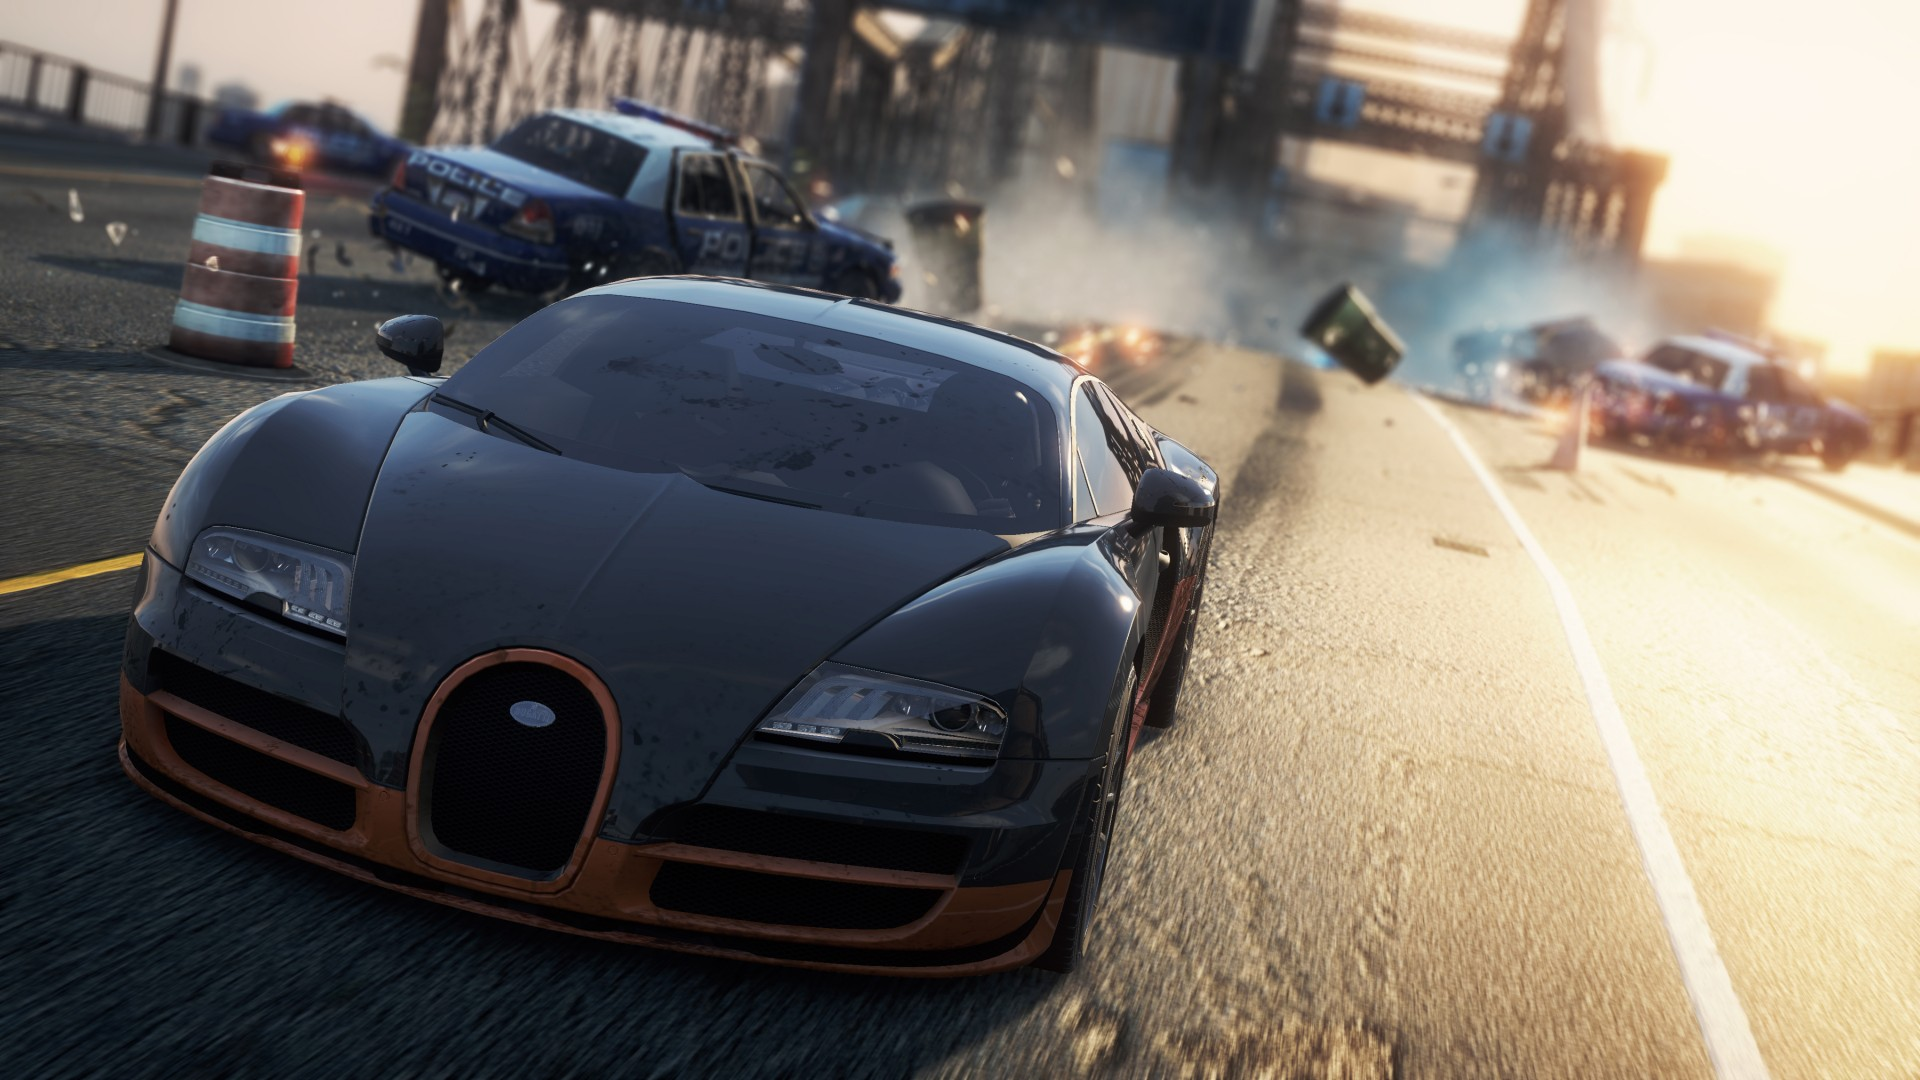 What Factors Make Bugatti Veyron Games Fun And Exciting?